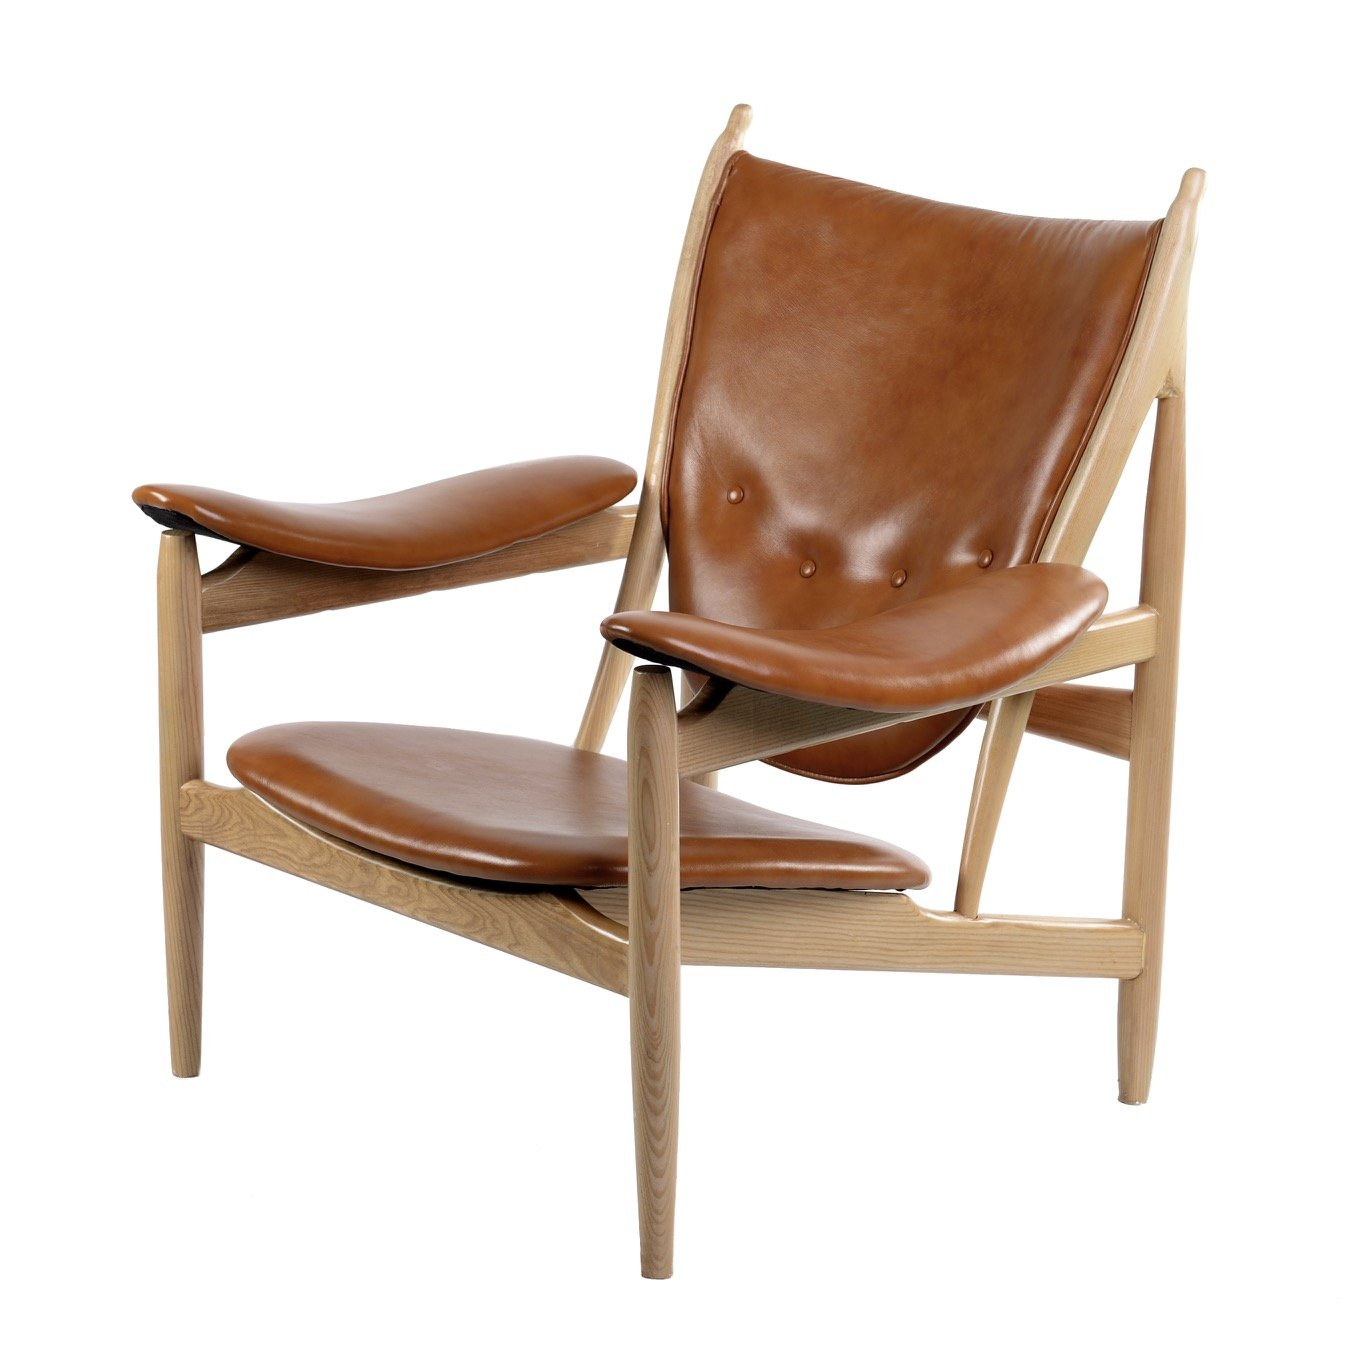 Arne Chair In Burnt Orange Leather On Mid Century Wood Frame Accent Chairs Alan  ...